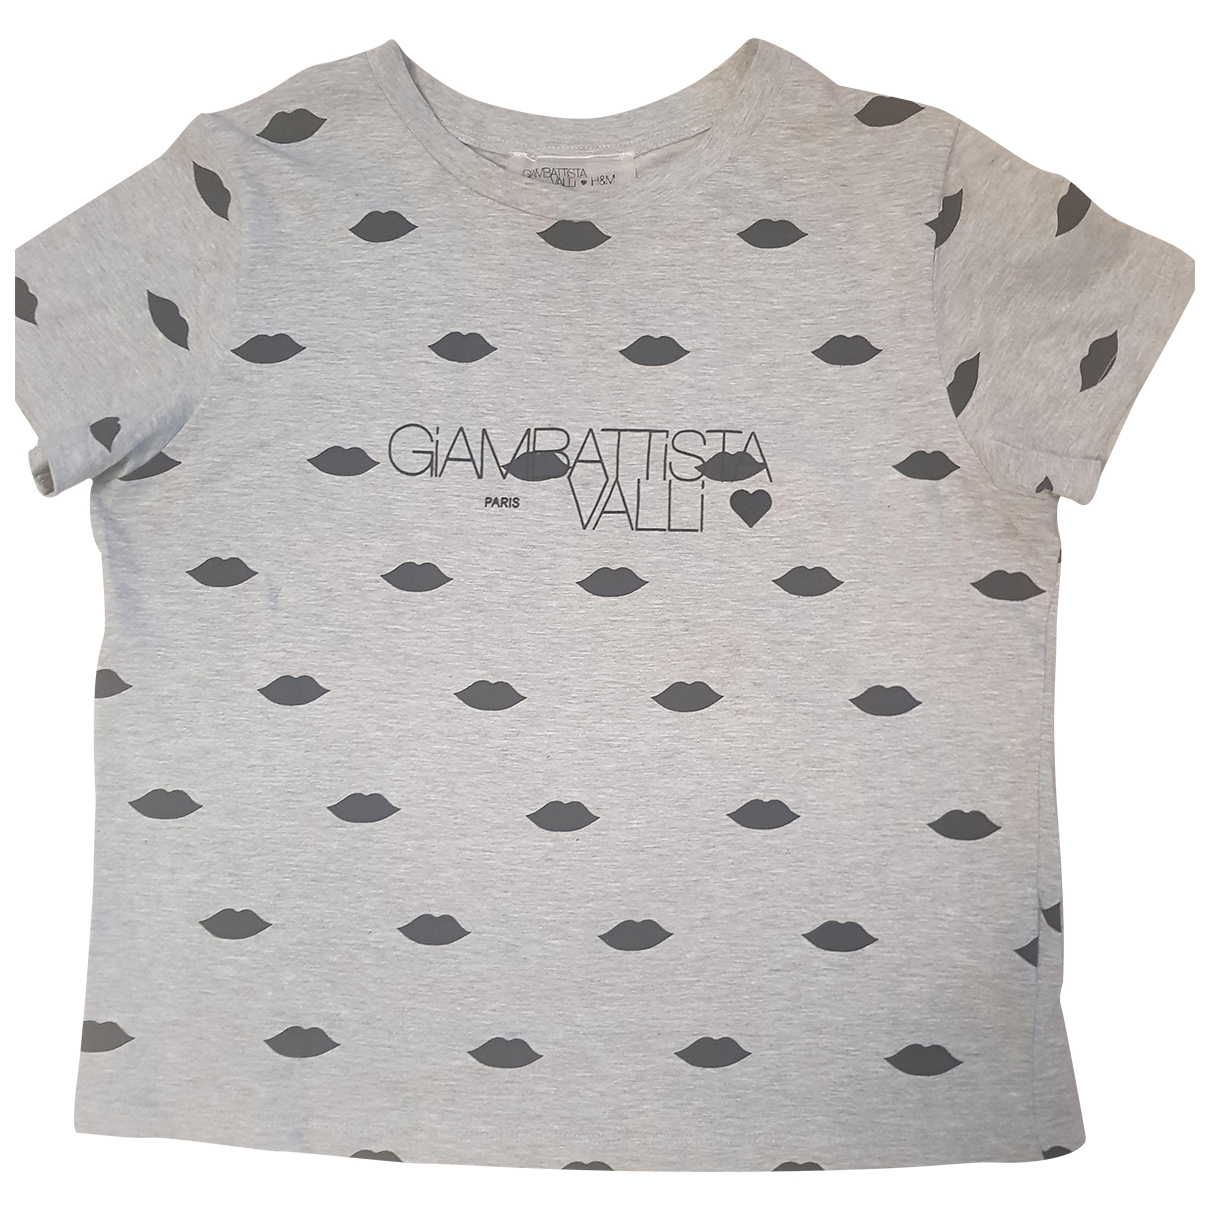 Giambattista Valli X H&m \N Grey Cotton  top for Women S International